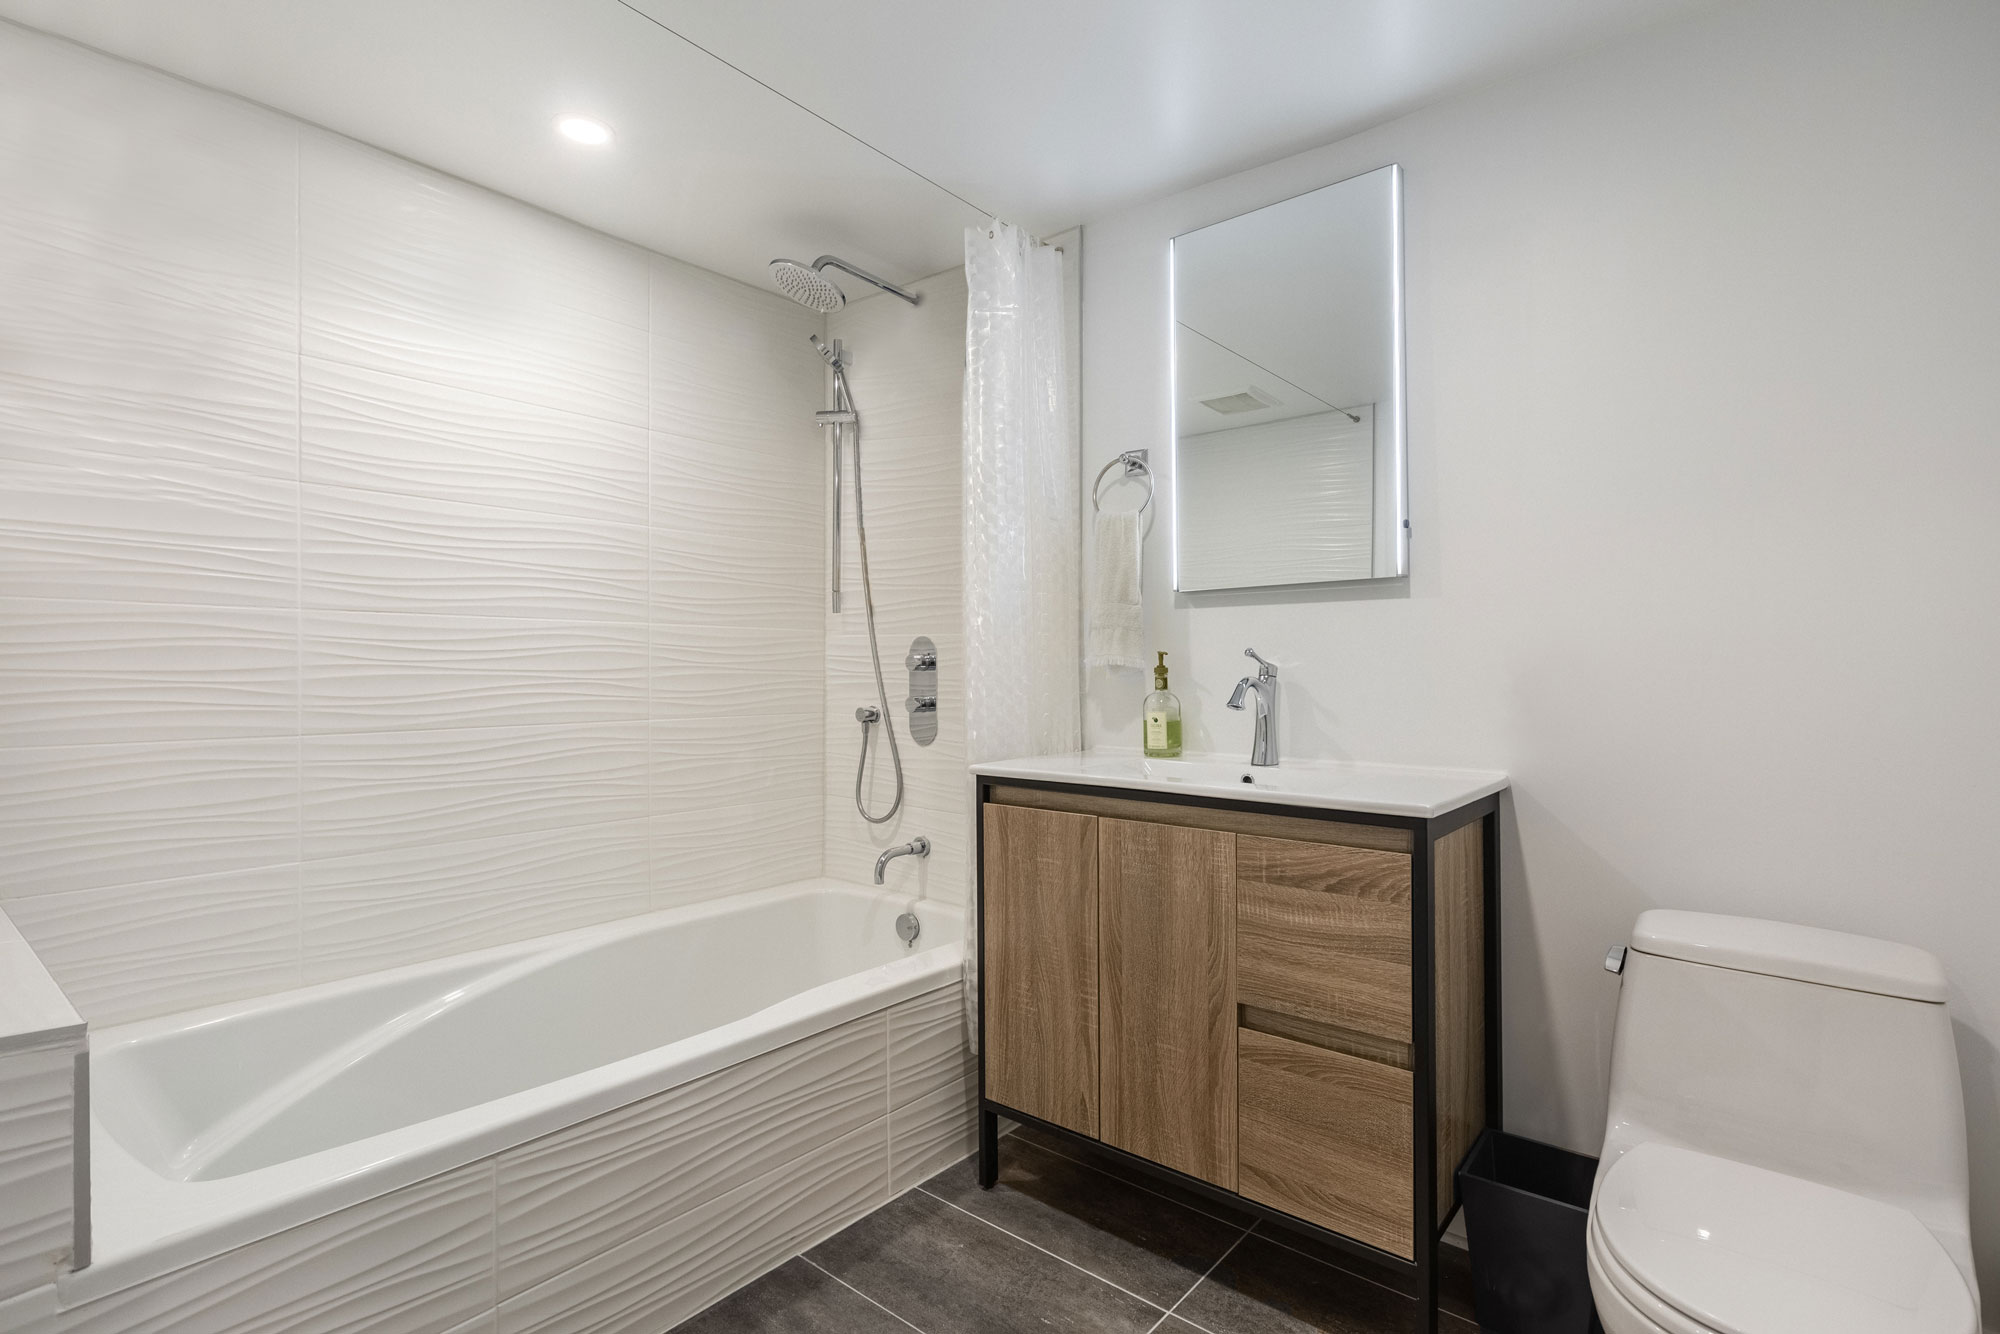 basement bathroom with shower-bath and wooden vanity